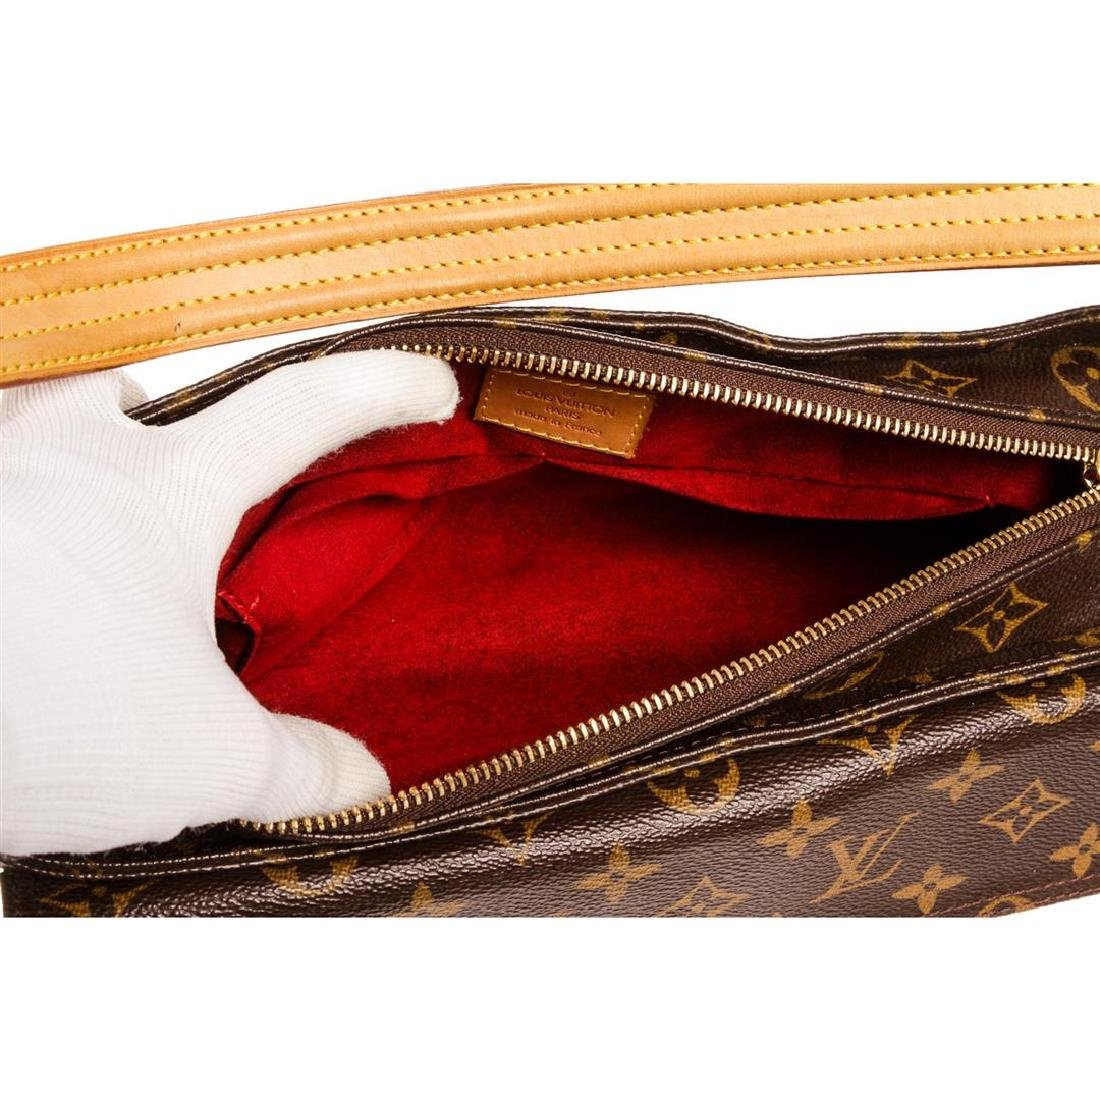 Louis Vuitton Monogram Canvas Leather Viva Cite MM Bag - 7